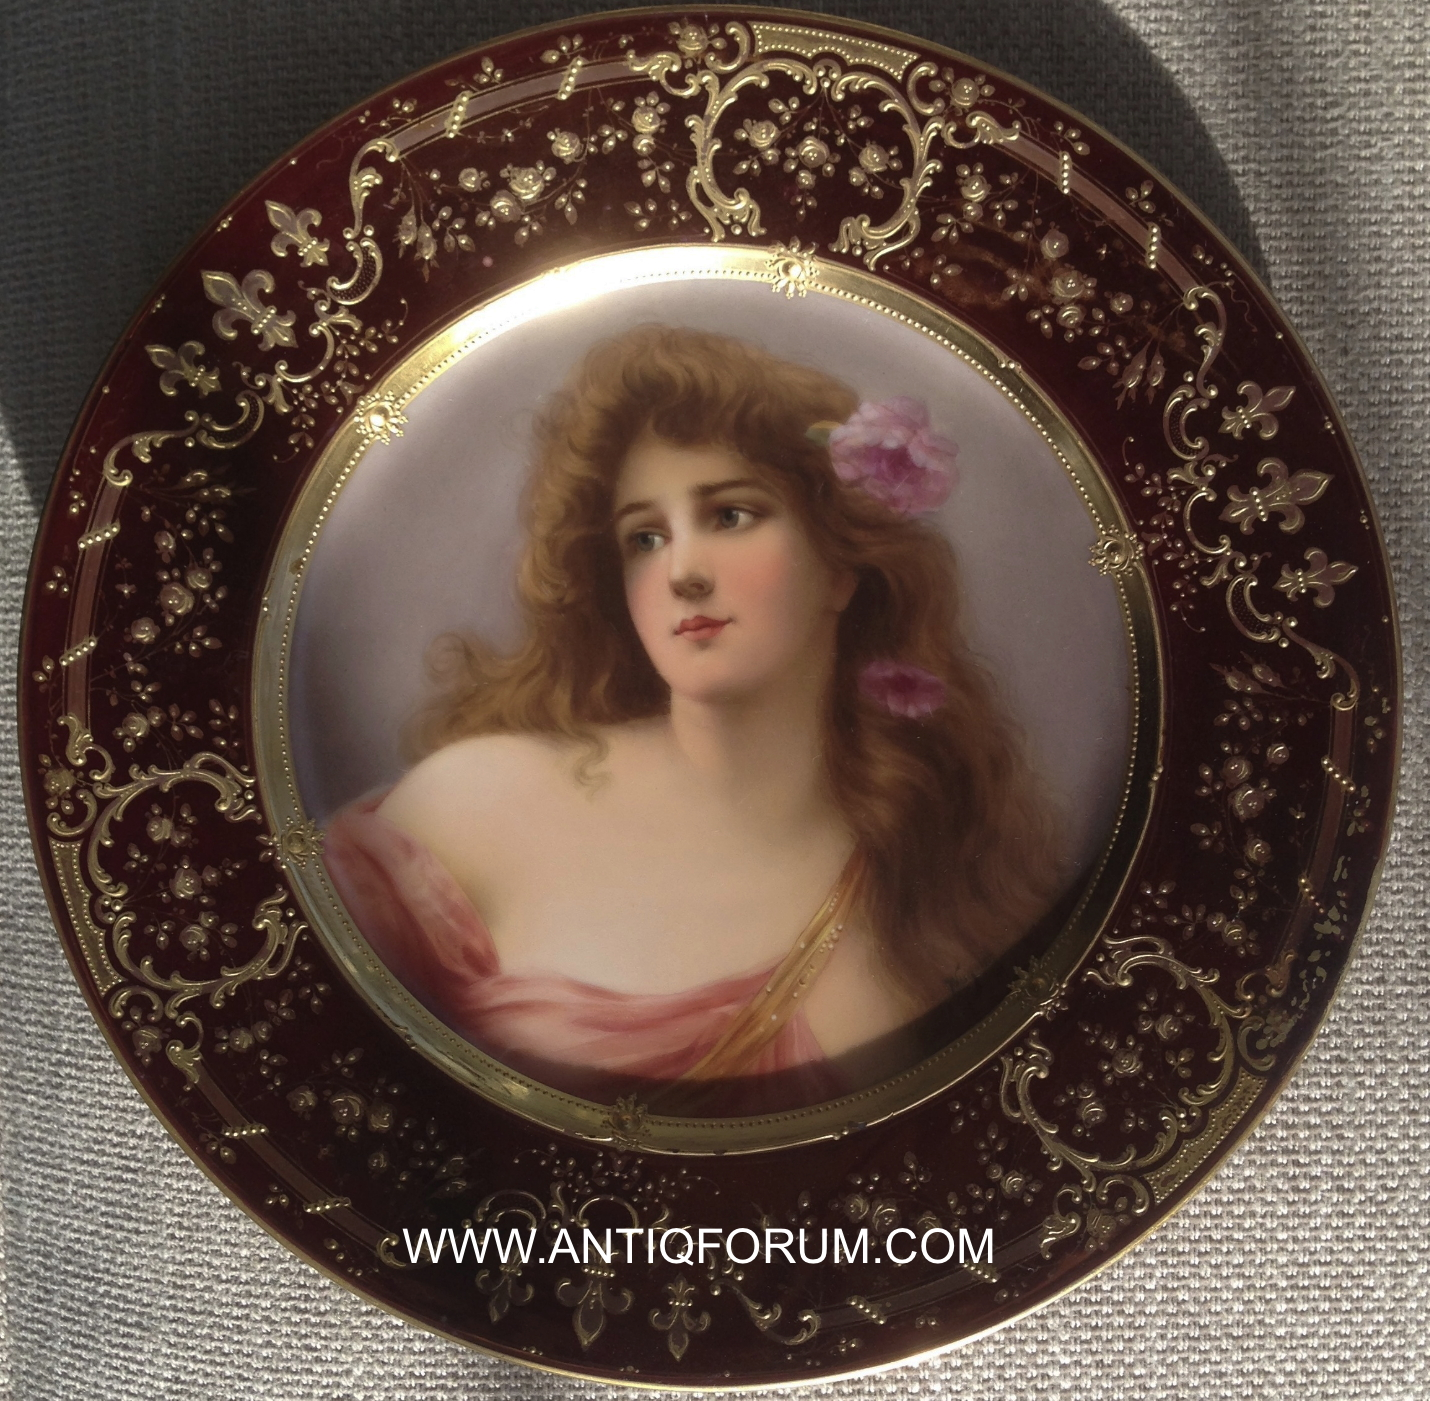 sc 1 st  AntiqForum & Royal Vienna Portrait Plates by Wagner - FREE Online Appraisal